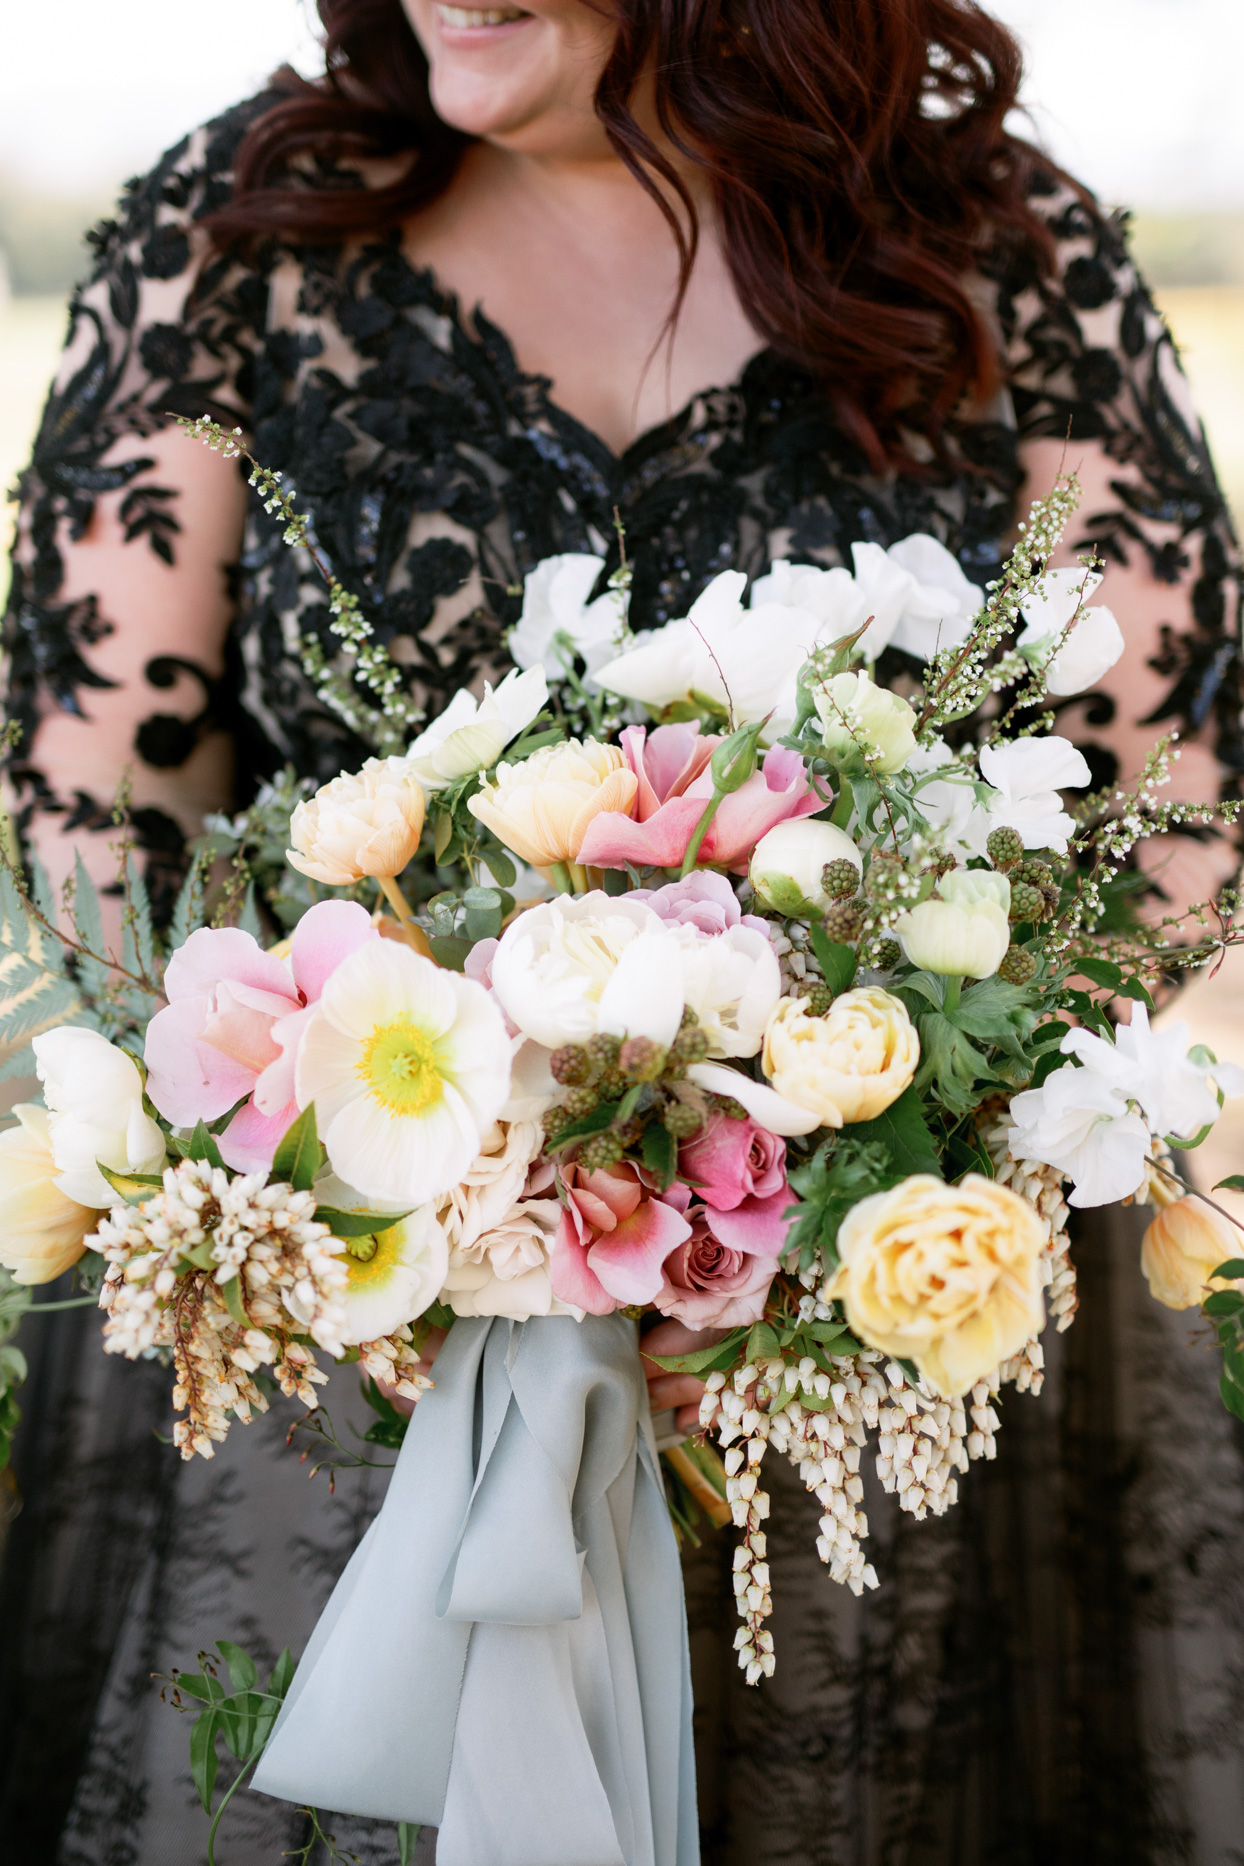 Bride holding bouquet with pink and yellow flowers